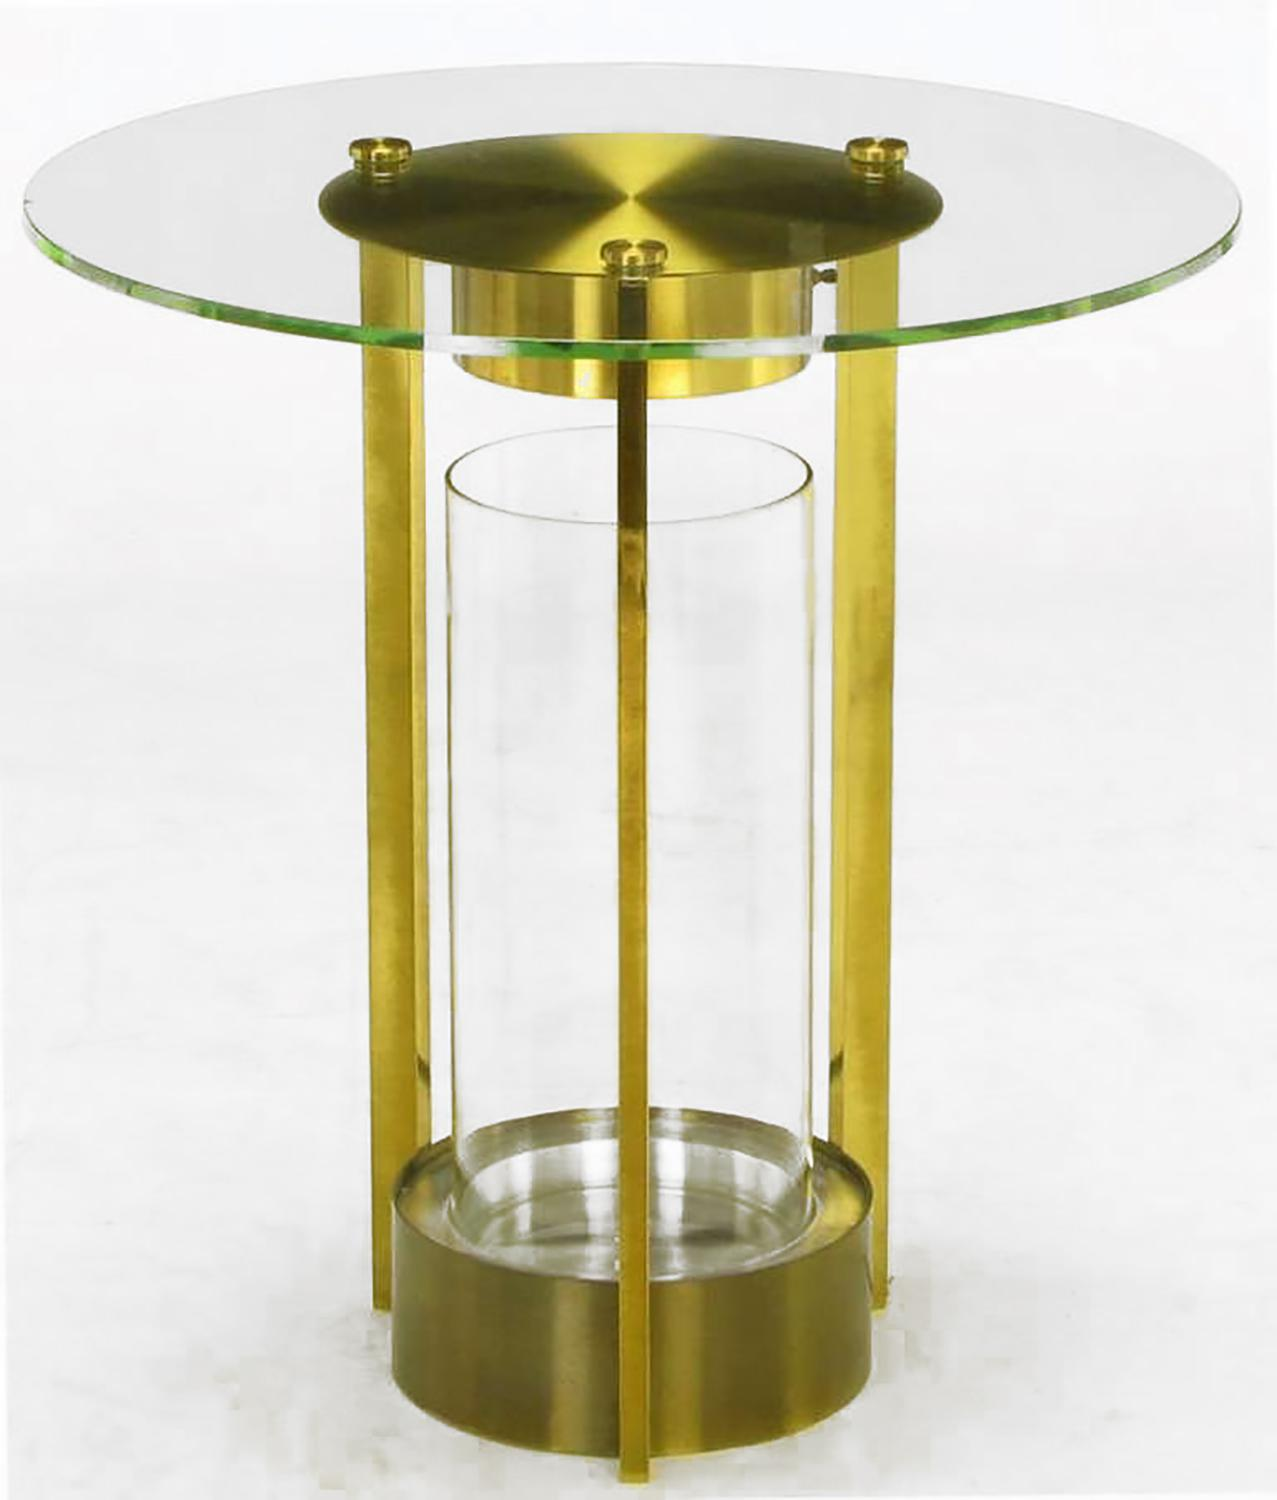 Brass U0026 Glass Cylindrical End Table Attributed To Dorothy Thorpe   Image 2  ...